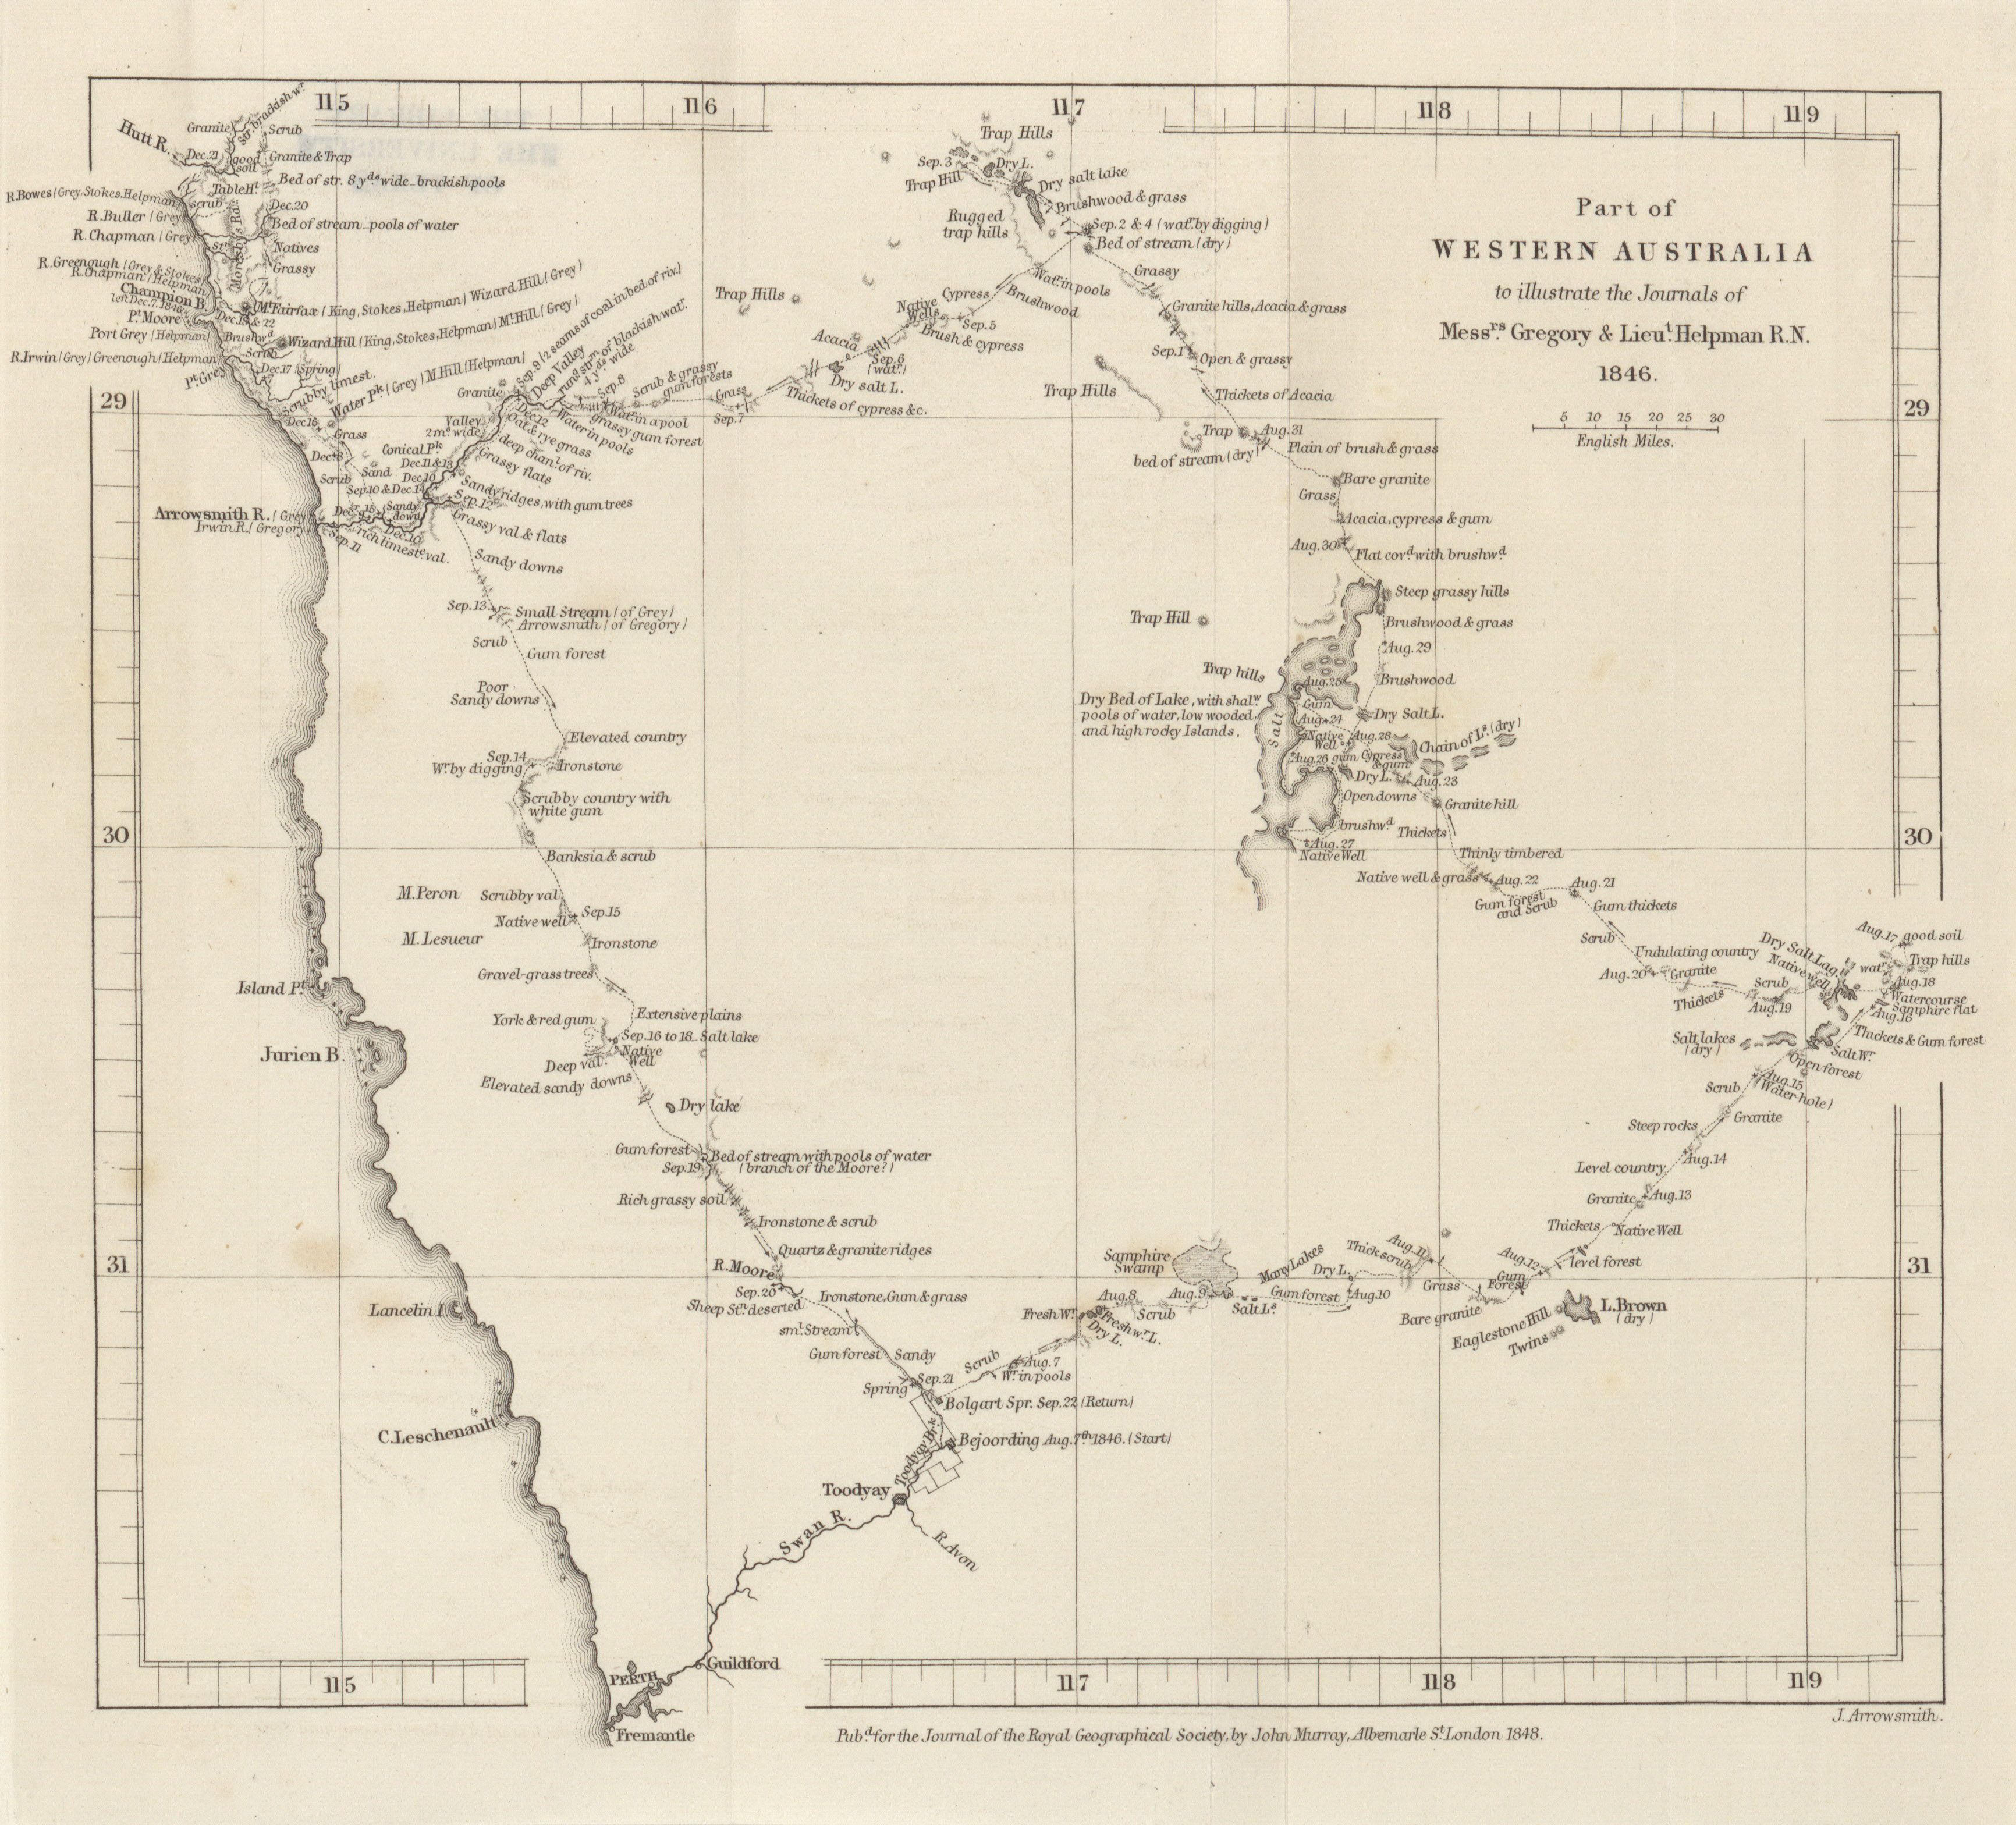 Australia Map In R.Maps From The Journal Of The Royal Geographical Society Of London